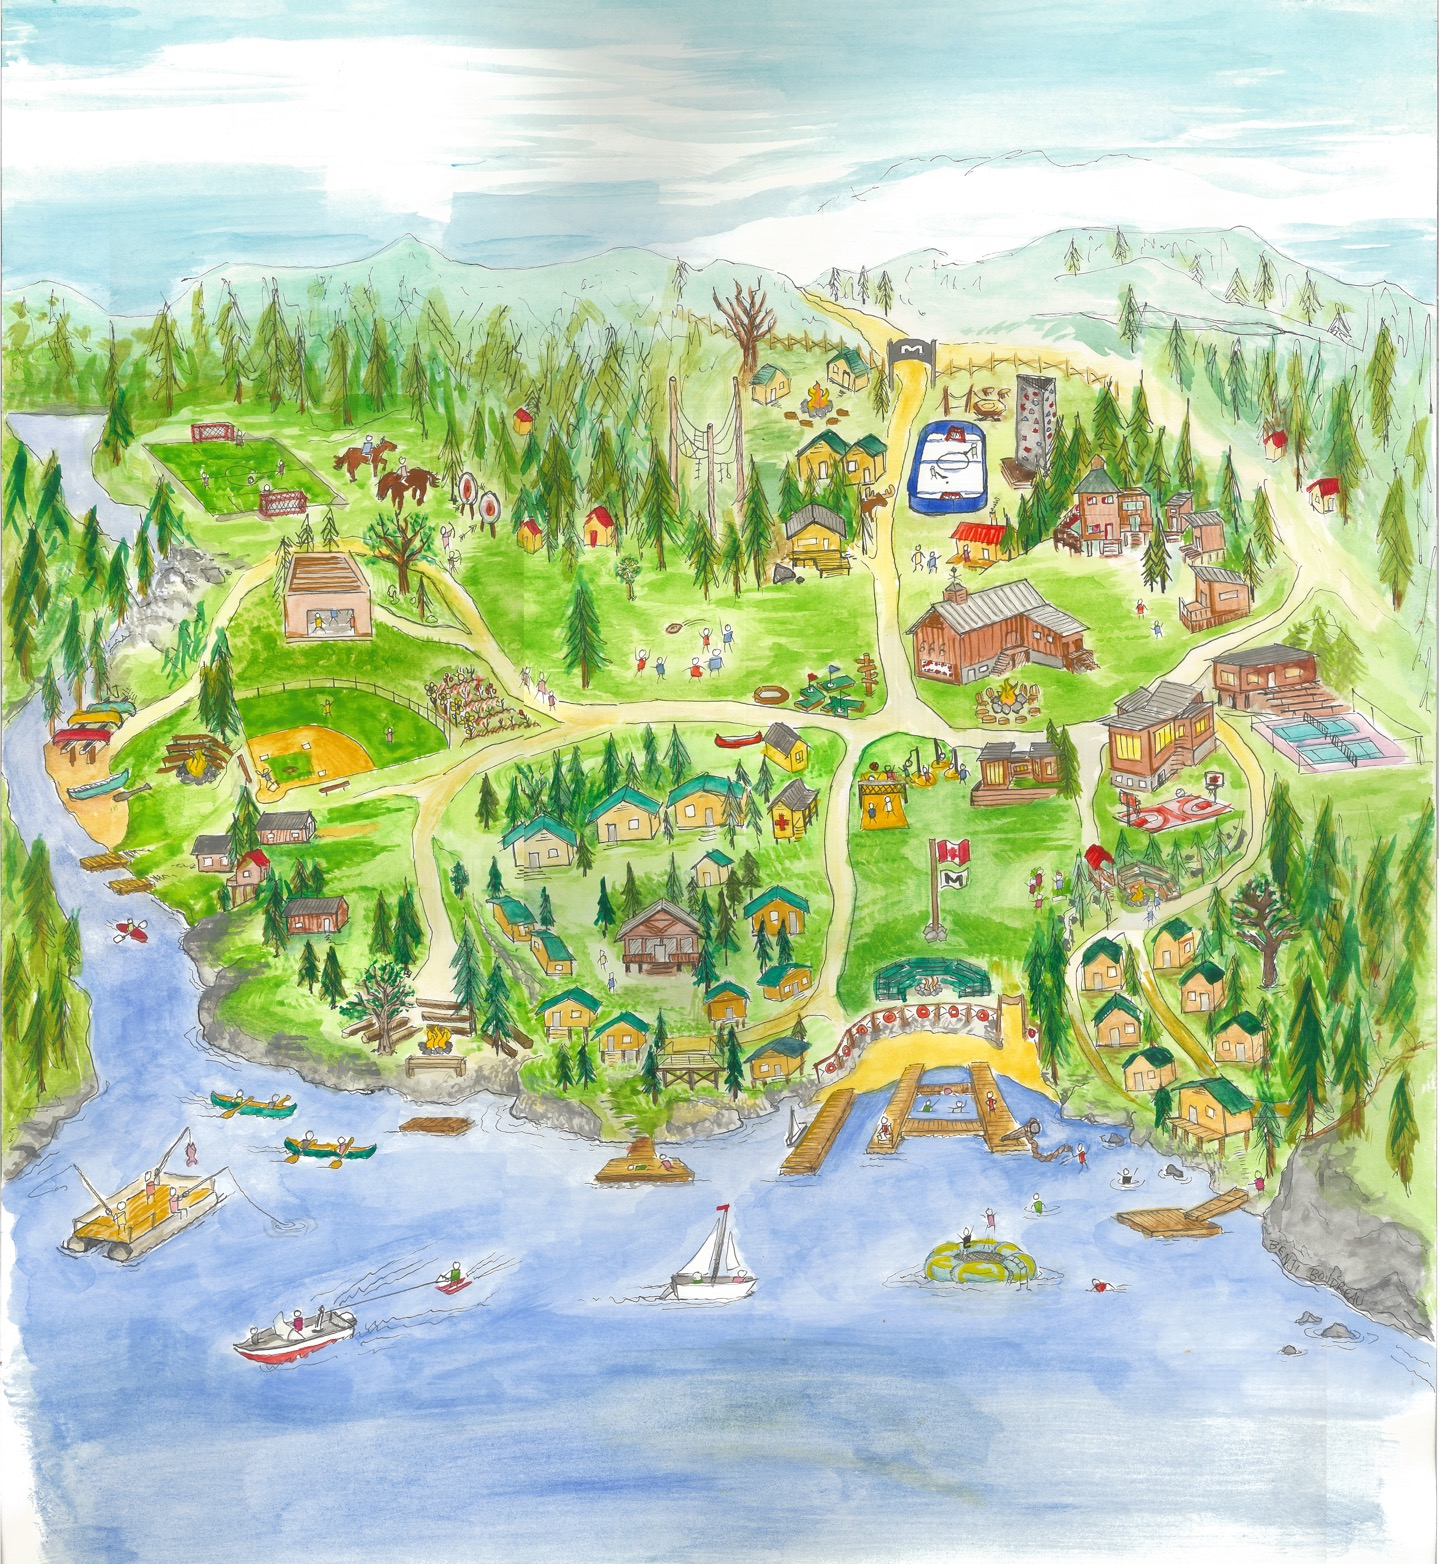 Camp Map | Camp Manitou Young Life Camp Map on fca camp, castaway camp, young women activities on pinterest, girl scouts camp, ymca camp, young living sign up, swimming pool from camp,